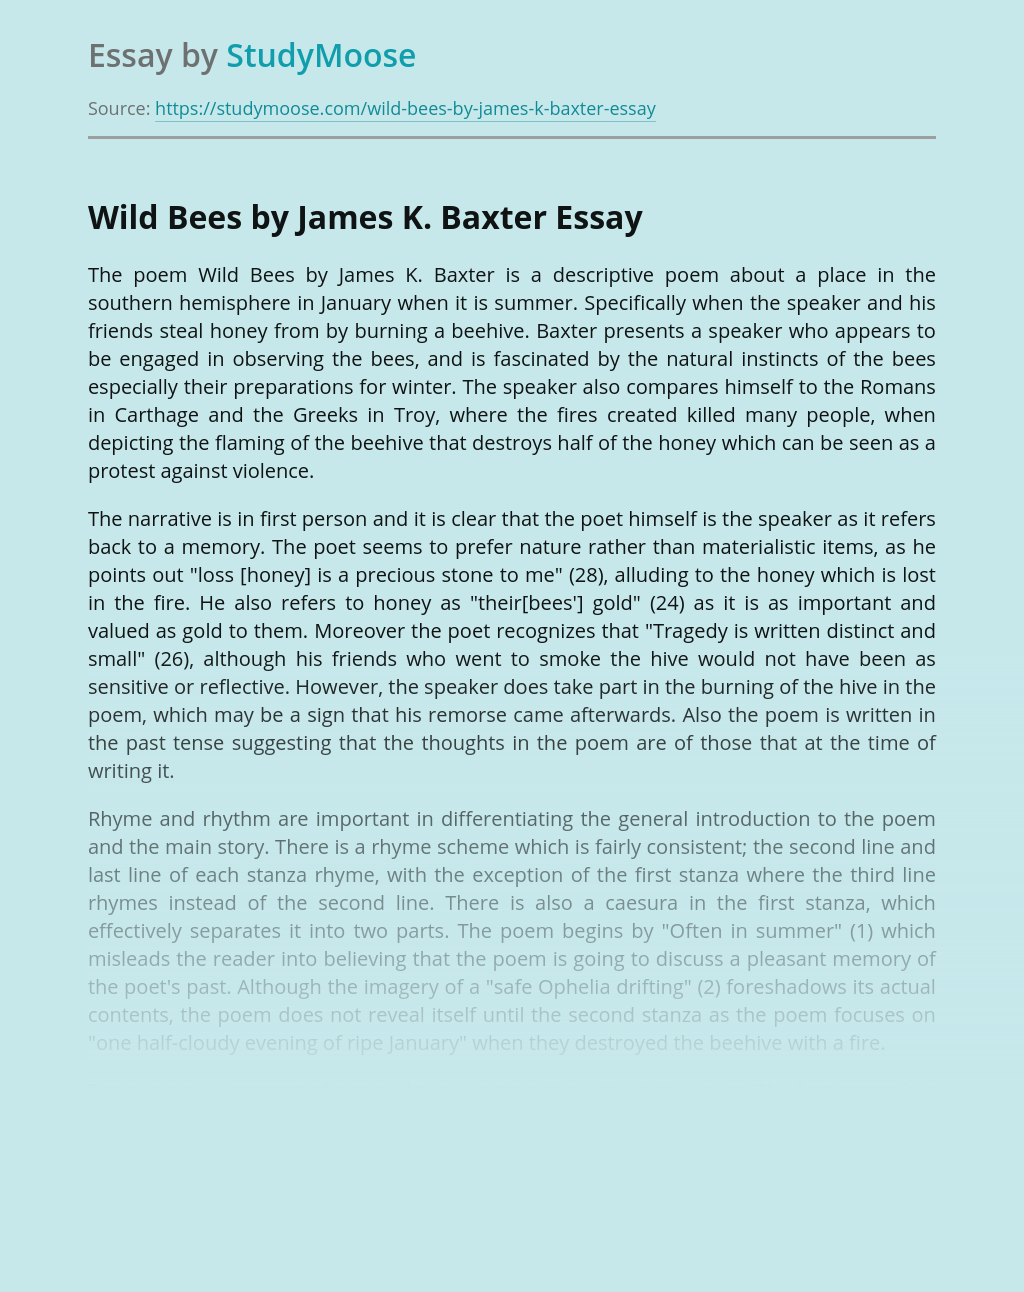 Wild Bees by James K. Baxter